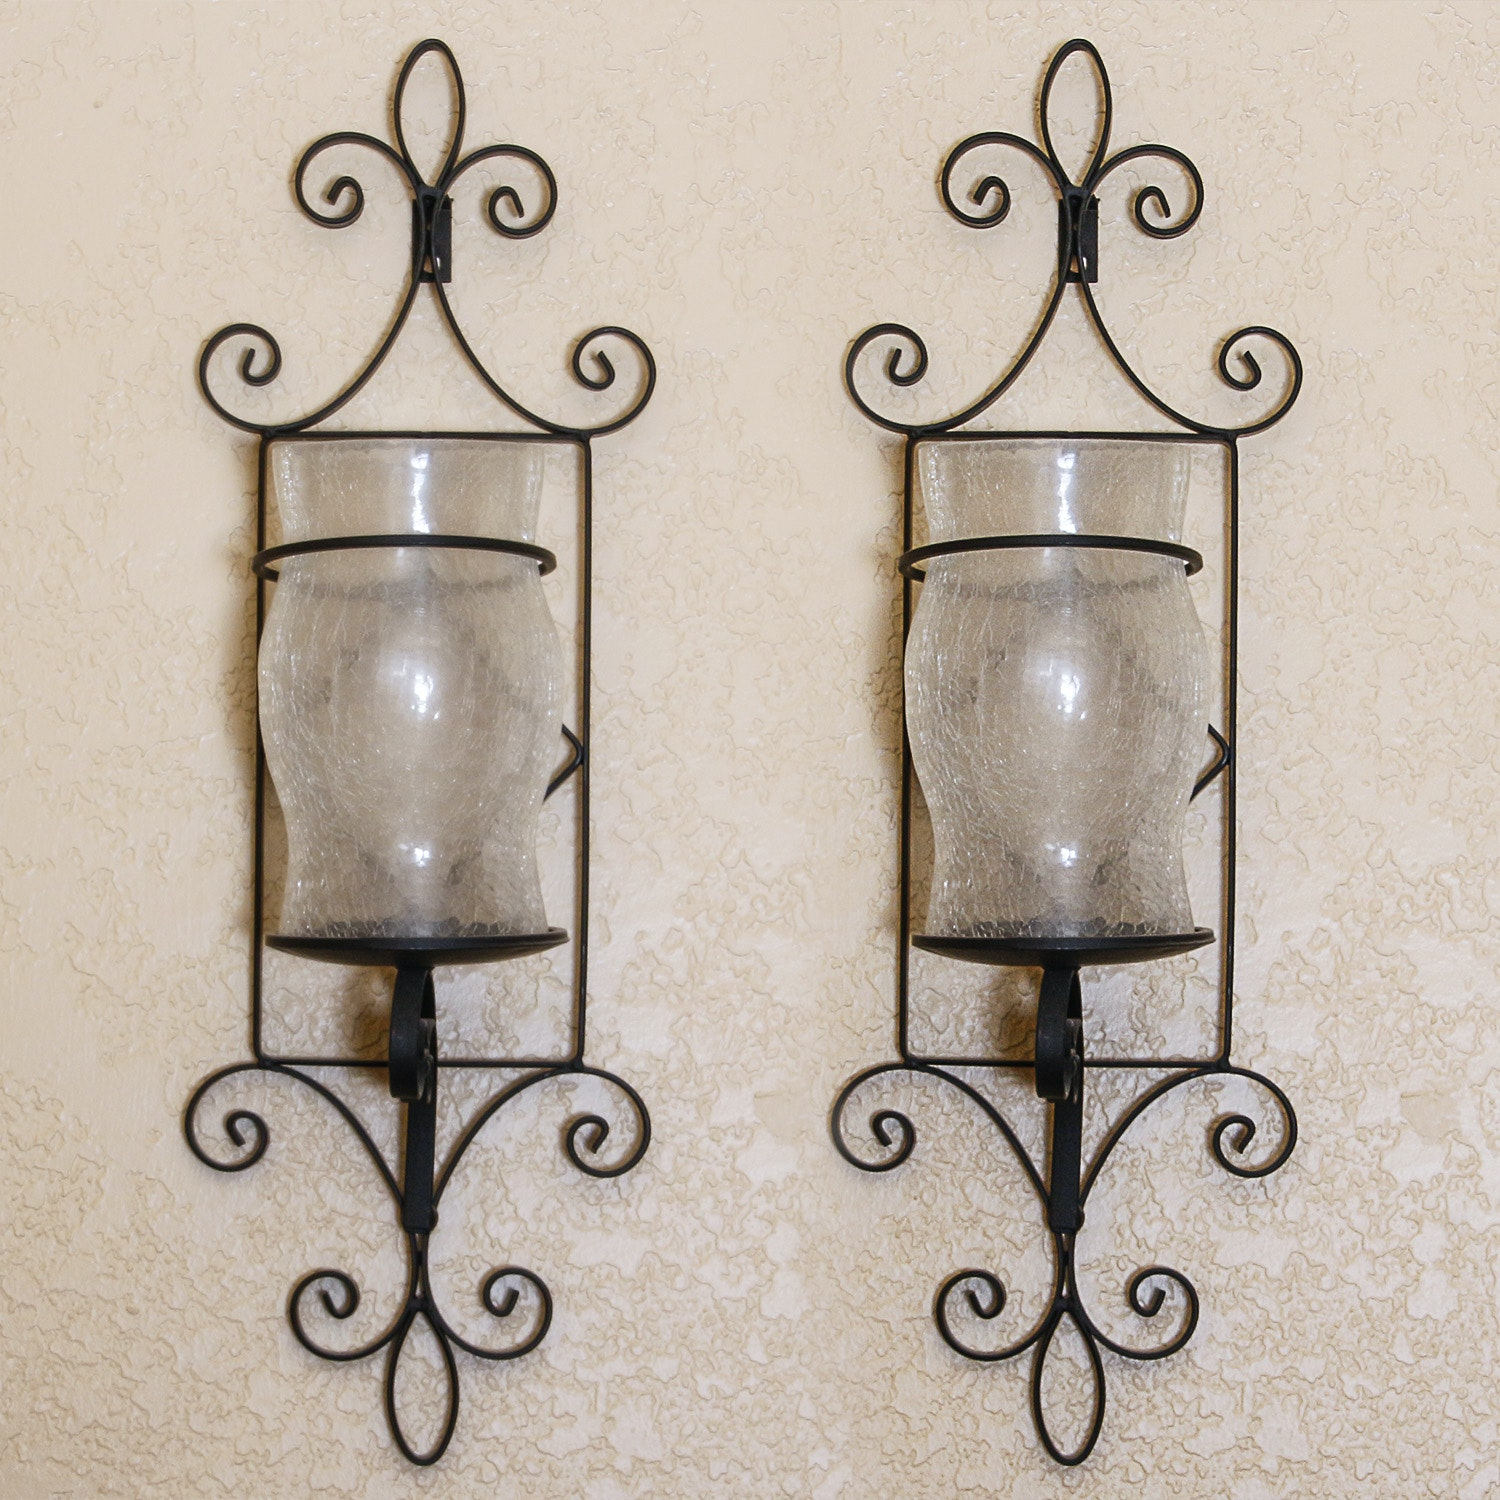 Two Wall Sconces with Hurricane Candle Holders